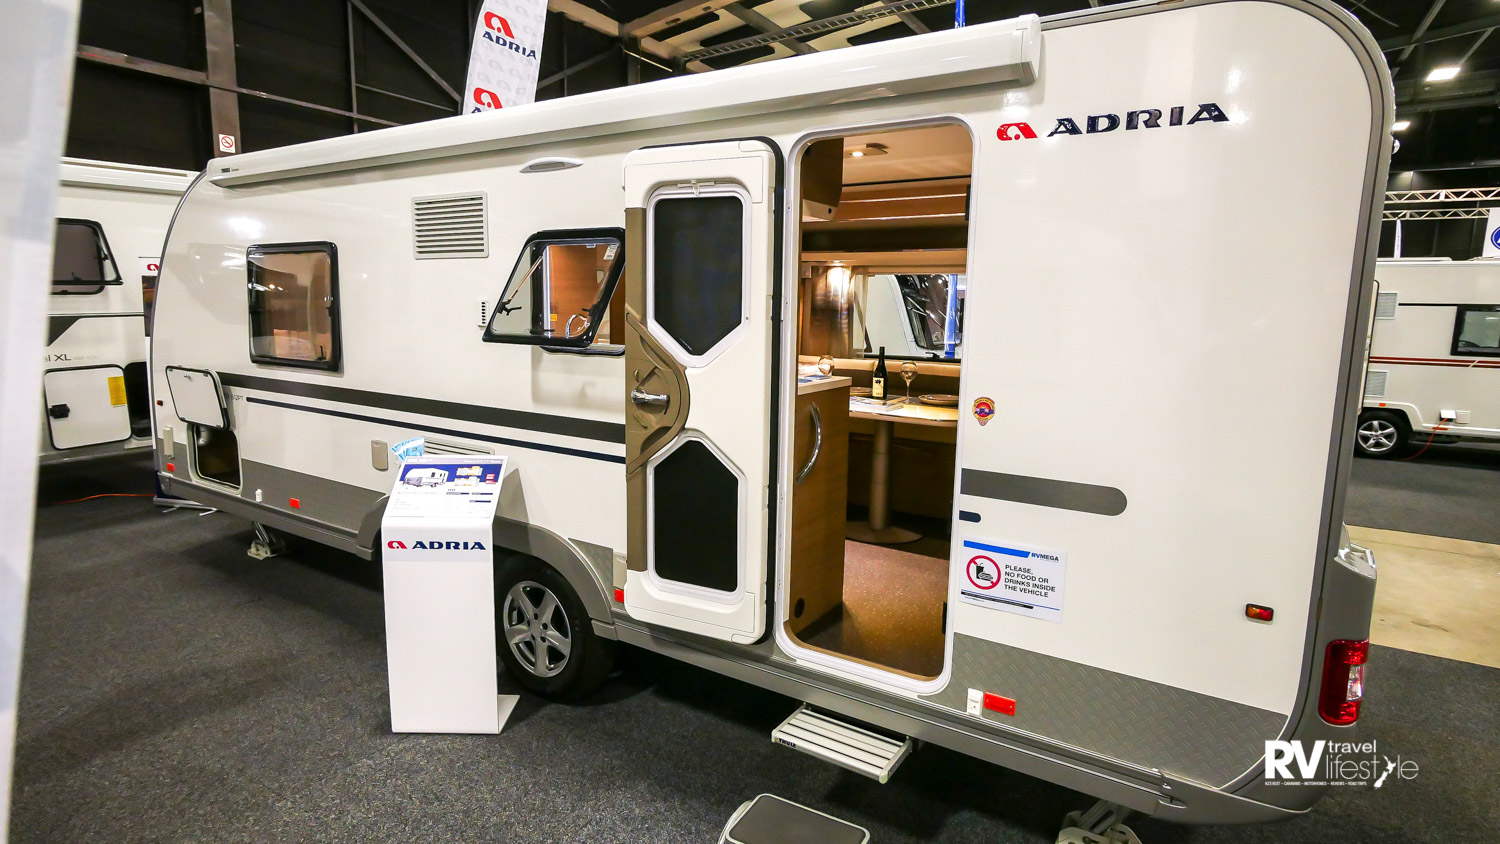 This model is the Adora 612 PT Slider dual-axle model